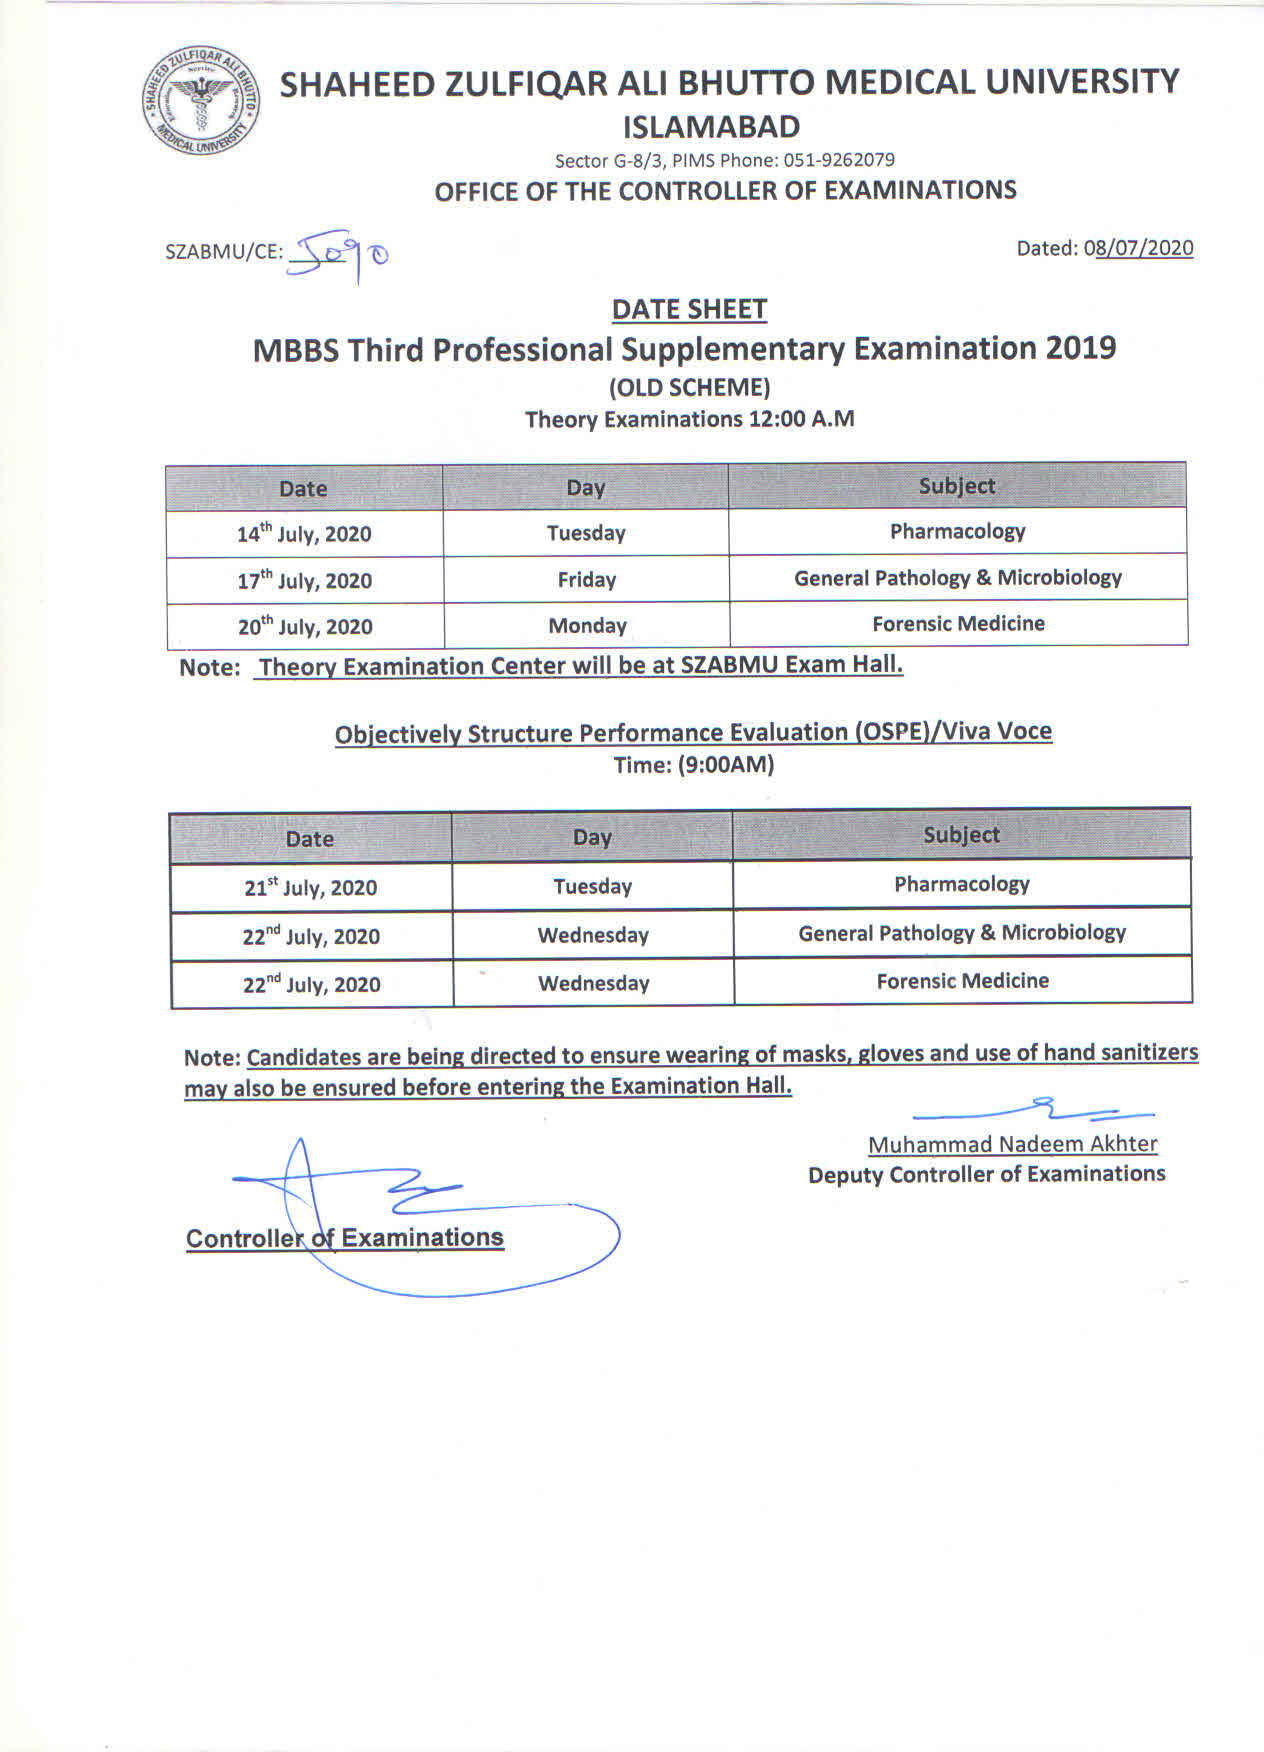 Date Sheet for MBBS 3rd Professional Supplementary Exam 2019 Old Scheme